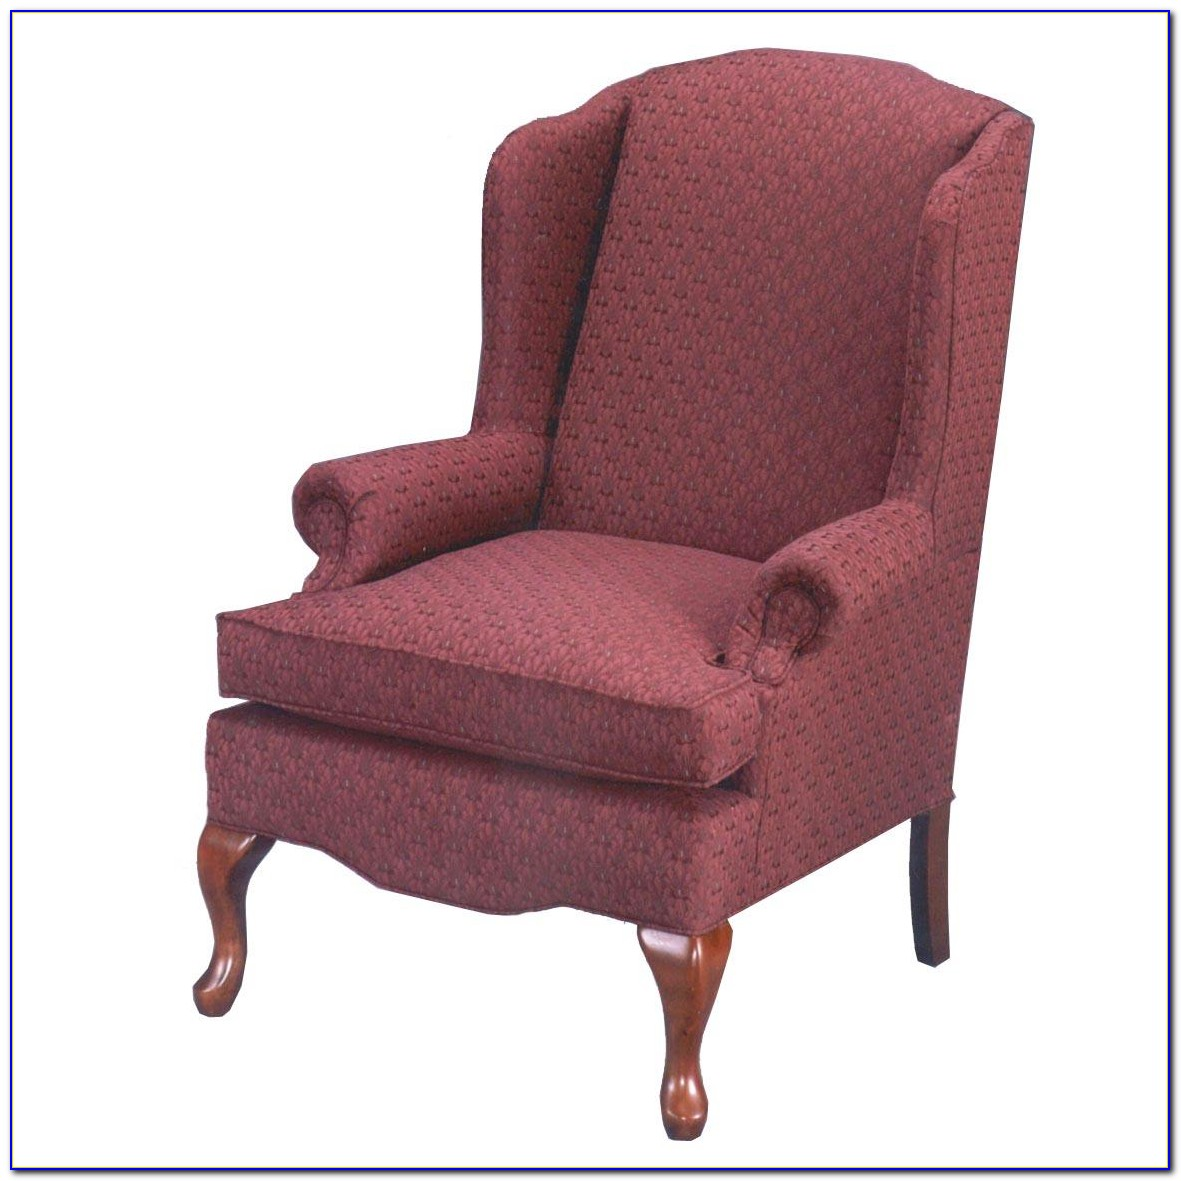 Queen Anne Wing Chair Dimensions